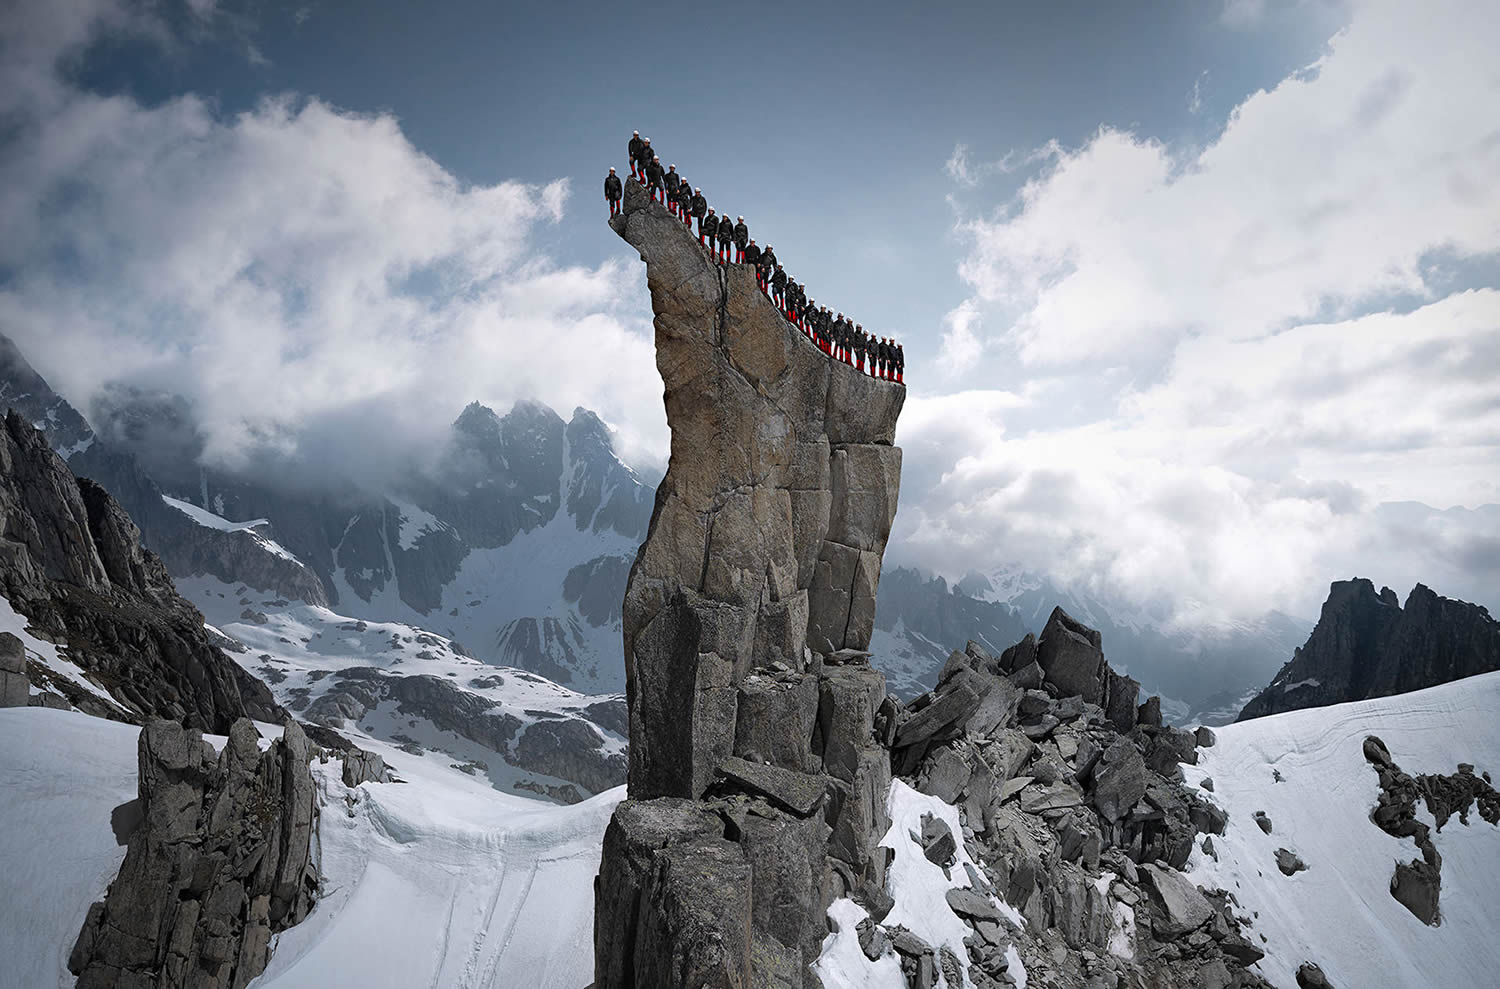 mountain climbers aligned on a rock, Robert Bösch mammut